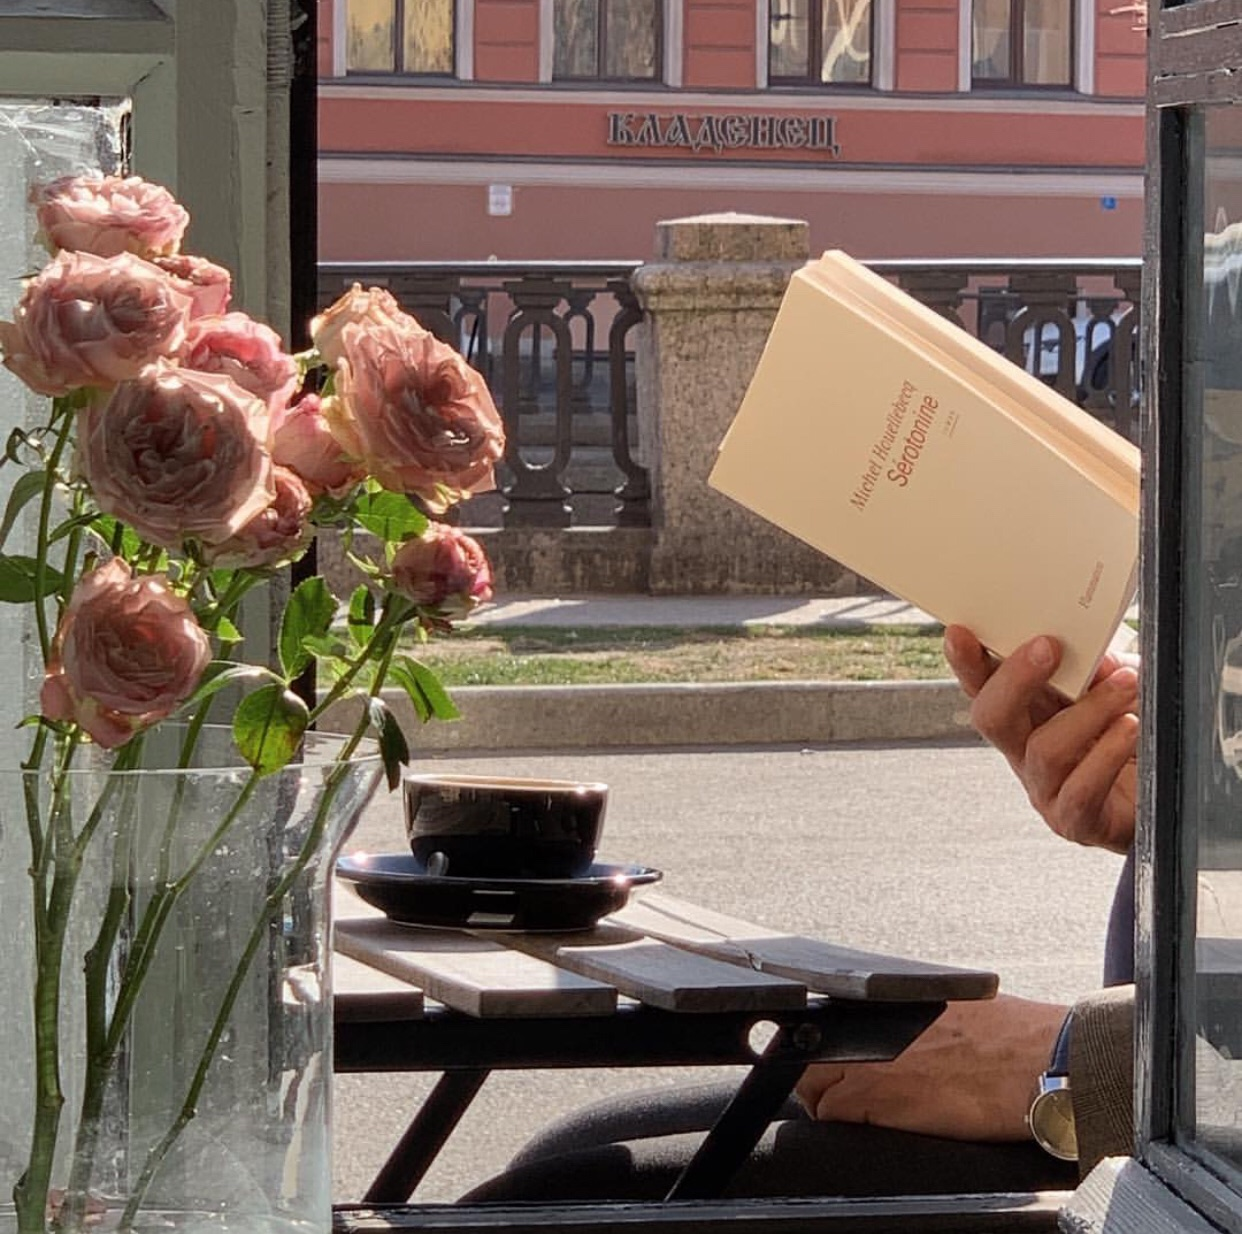 book, flowers, and city image